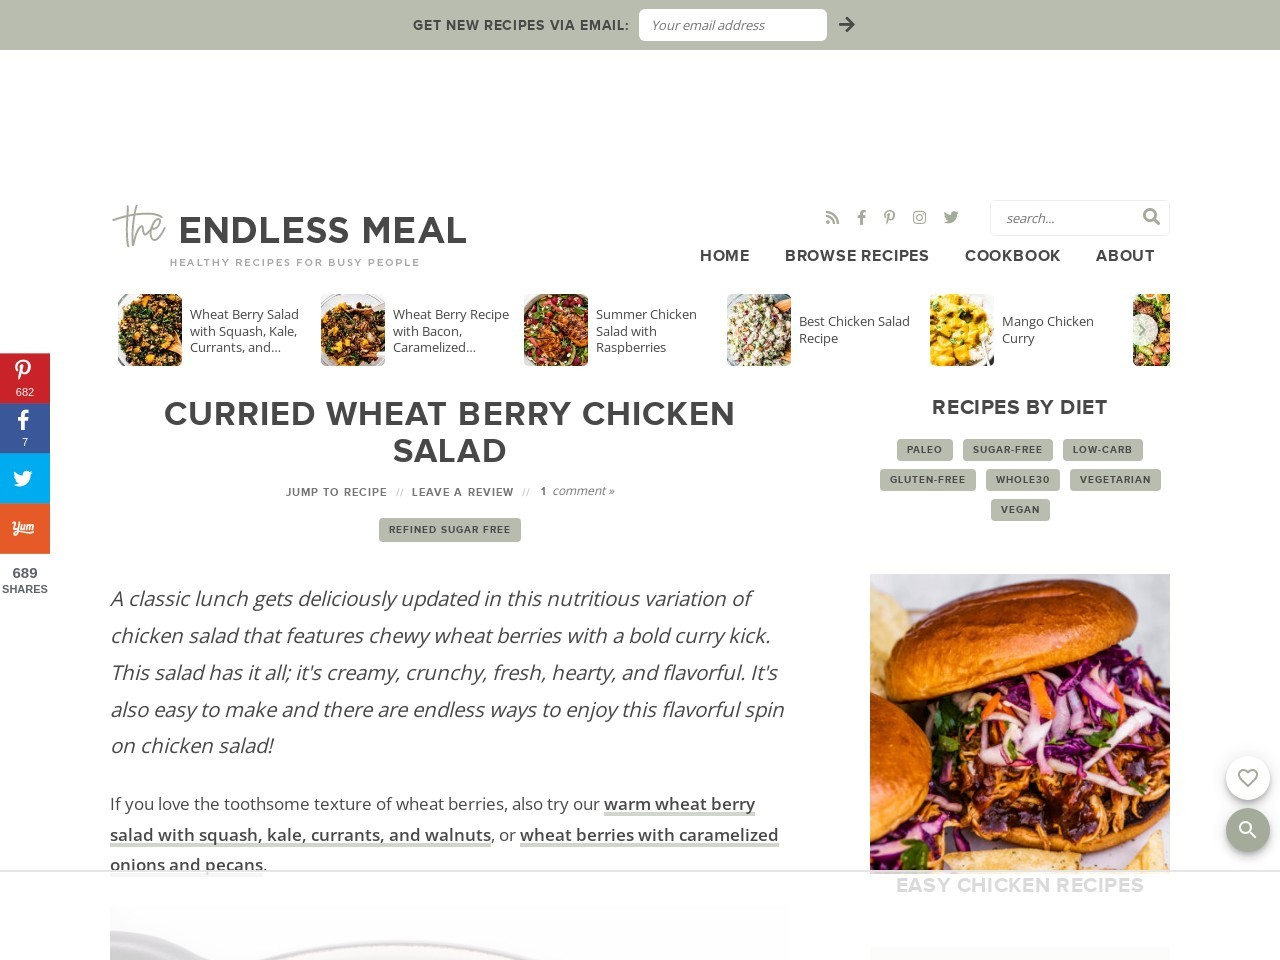 Curried Chicken and Wheat Berry Salad – The Endless Meal